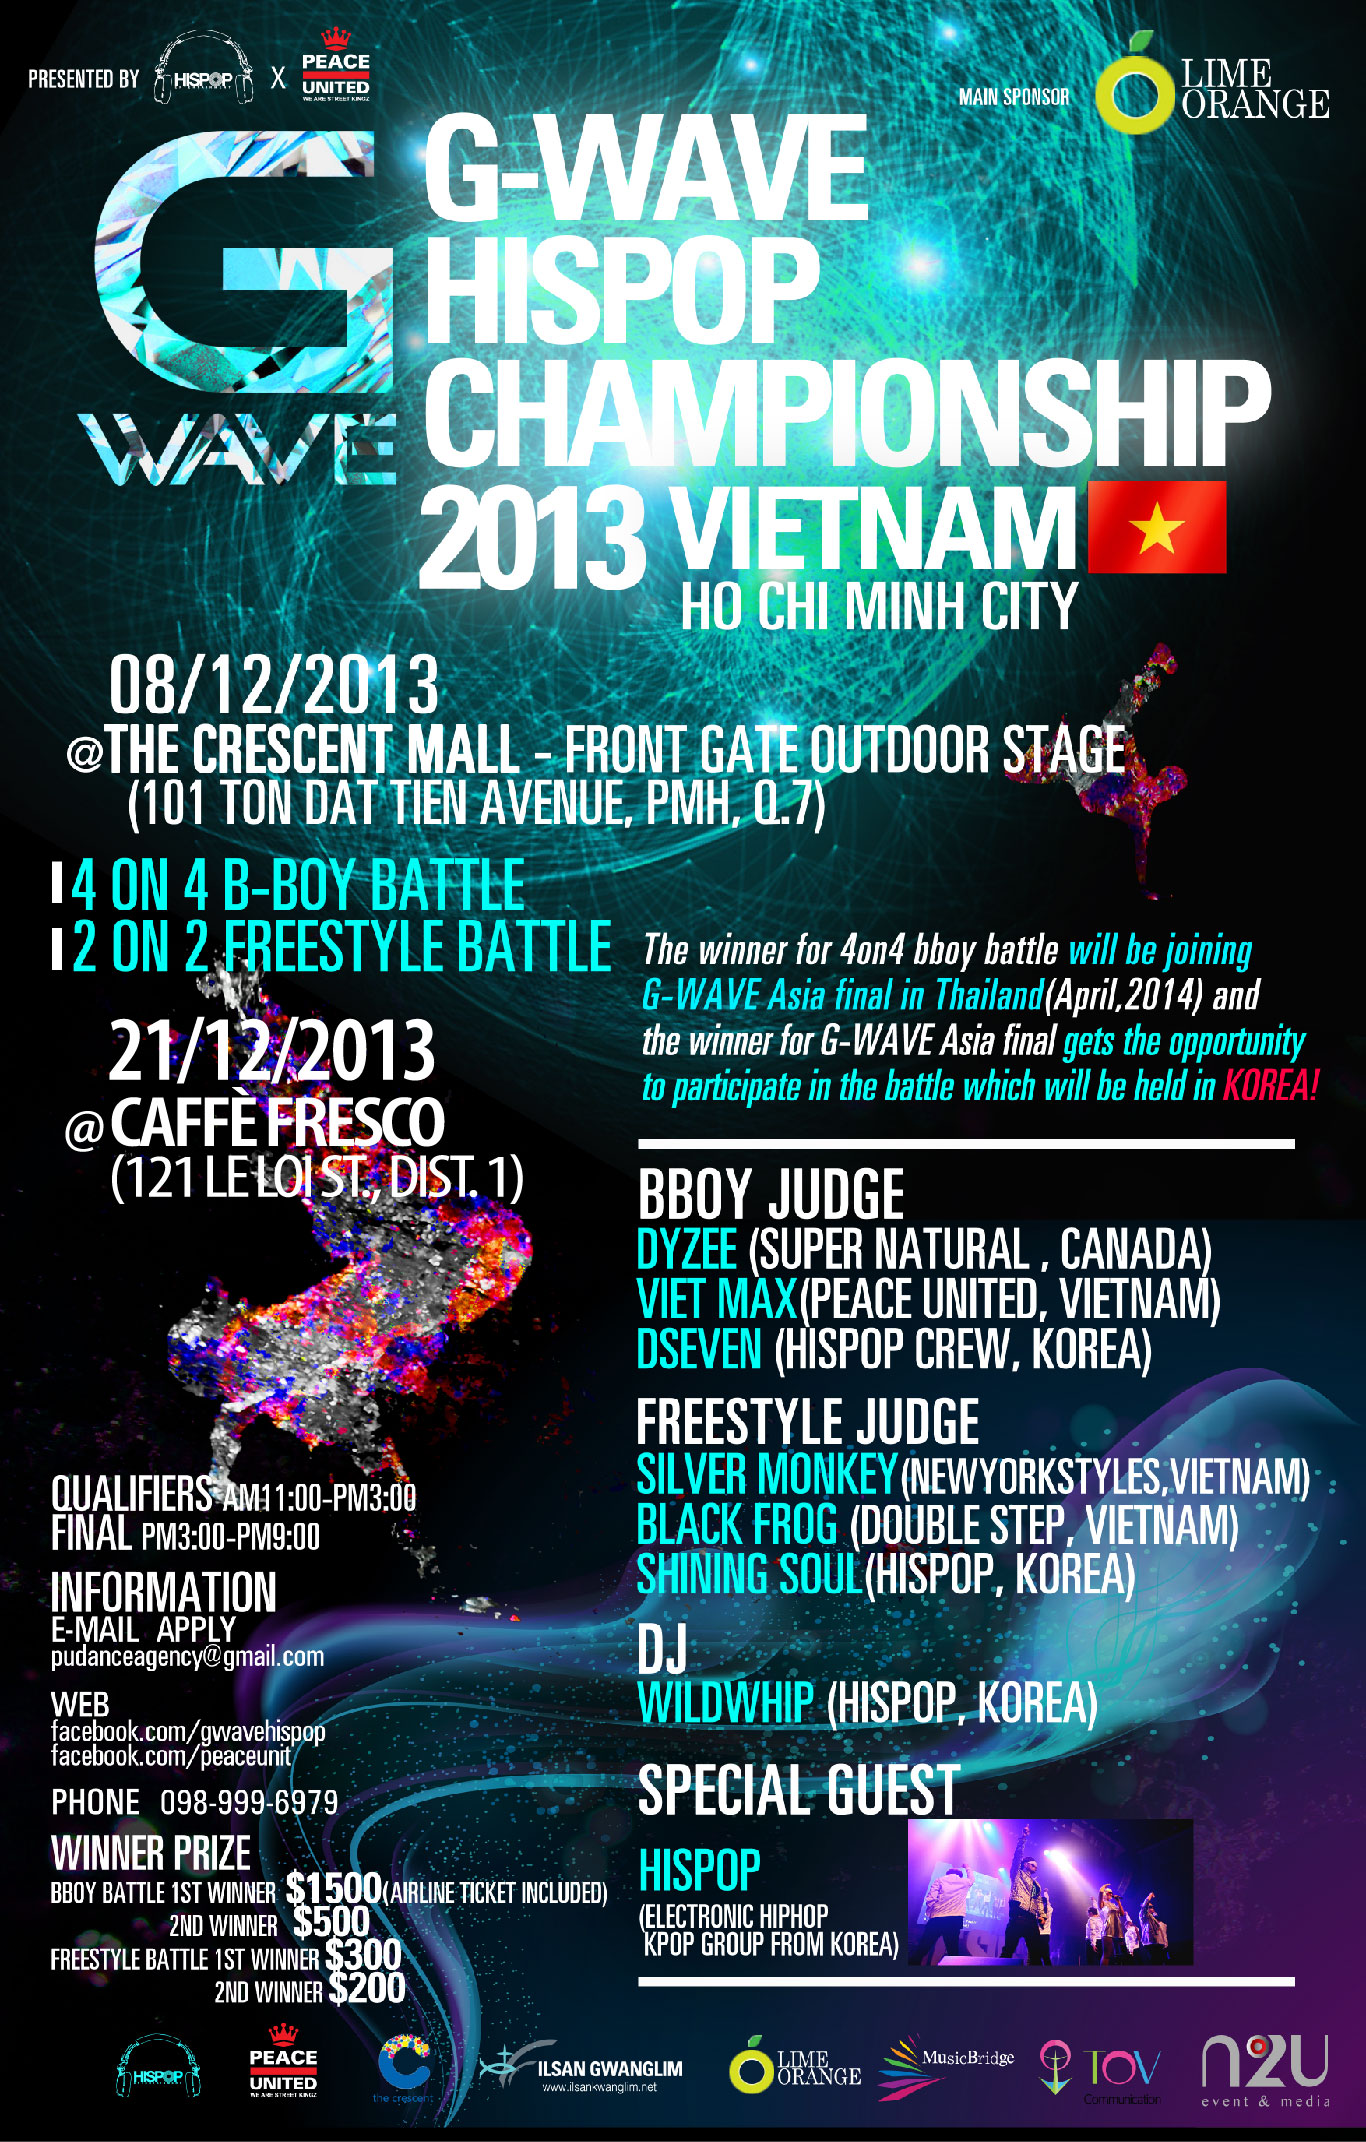 G-wave hispop battle in vietnamFB